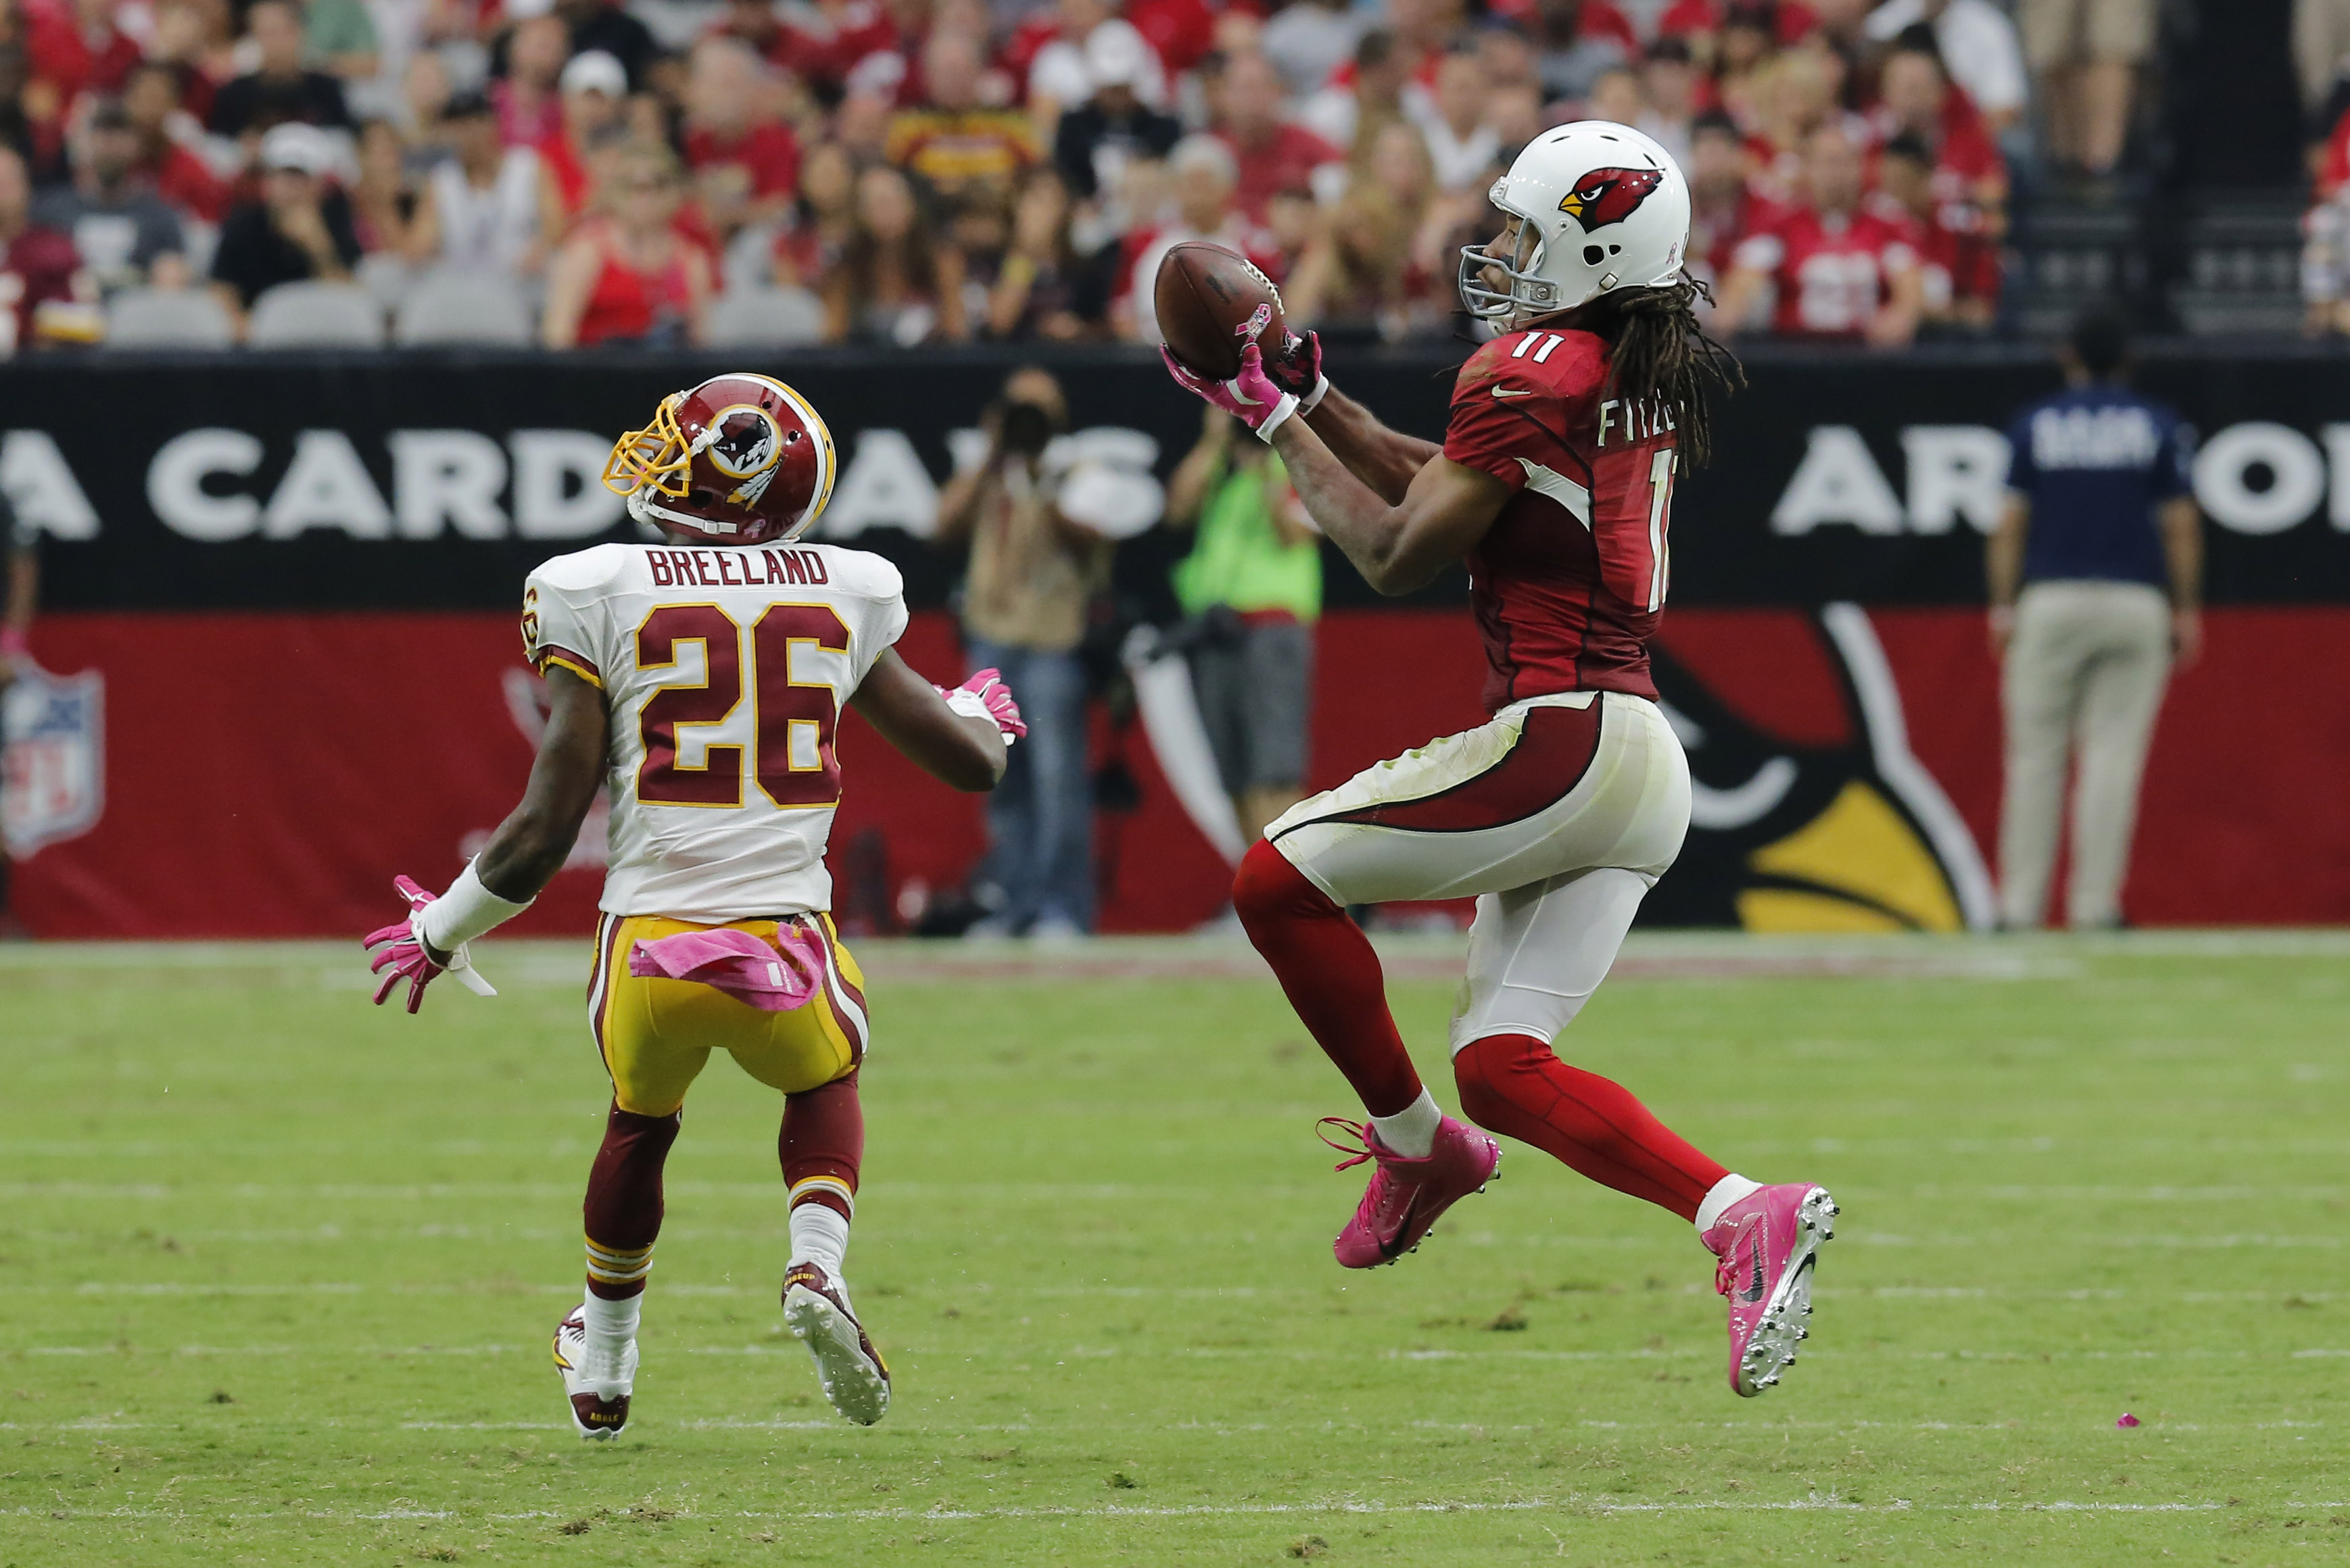 Arizona Cardinals wide receiver Larry Fitzgerald (11) pulls in a pass as Washington Redskins strong safety Bashaud Breeland (26) defends during the second half of an NFL football game, Sunday, Oct. 12, 2014, in Glendale, Ariz.(AP Photo/Rick Scuteri)